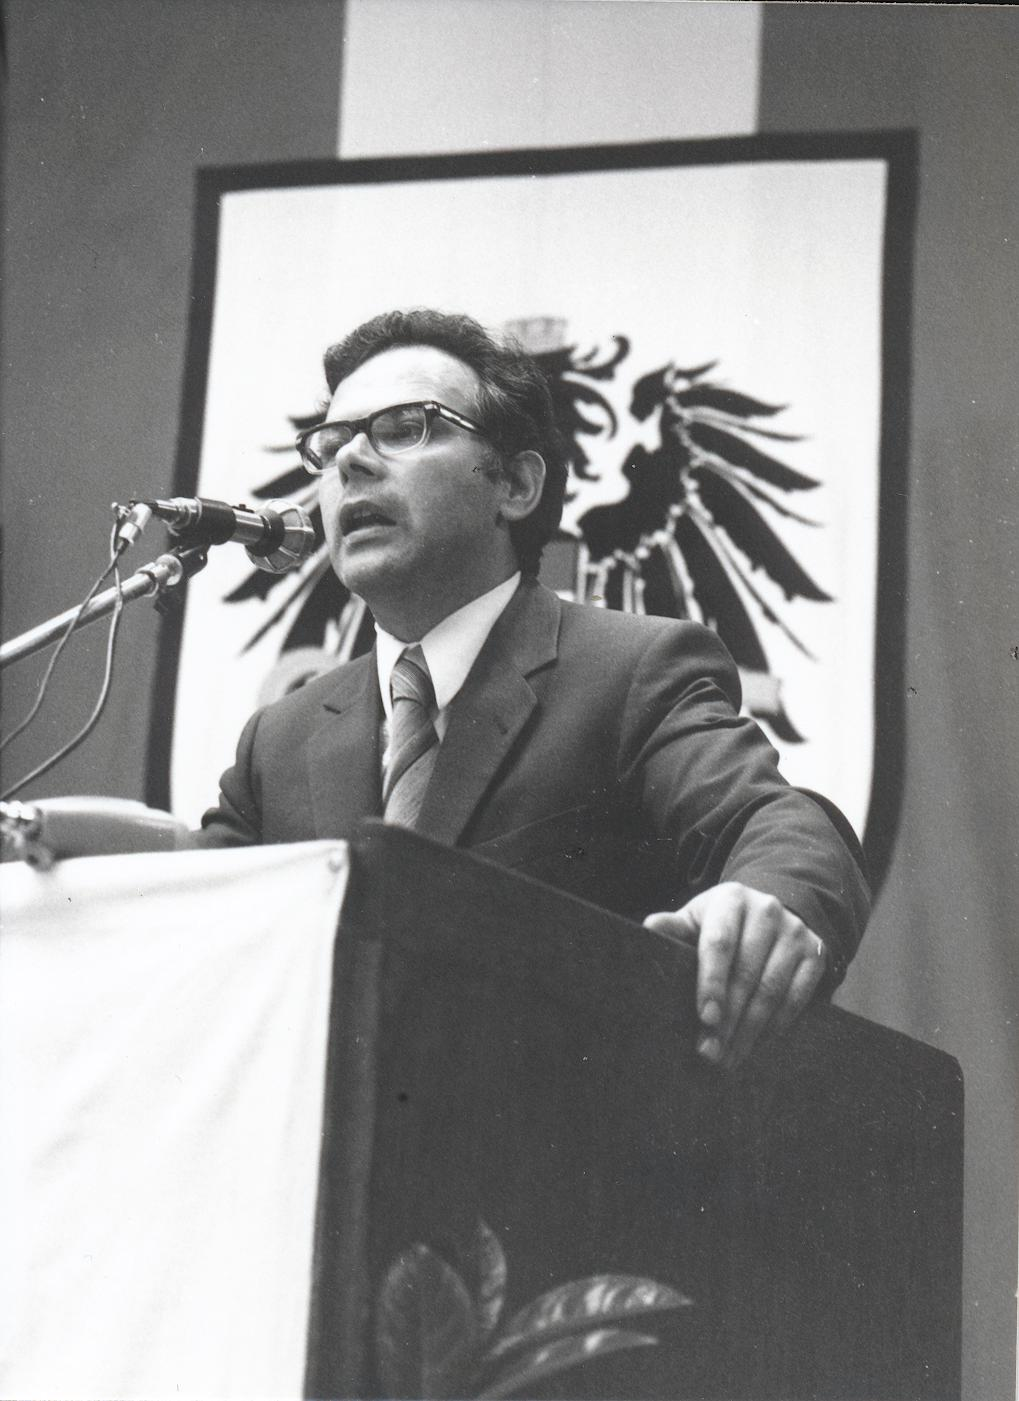 VII. Internationaler Imago Mundi-Kongress 1978, Innsbruck, Prof. DDr. Andreas Resch